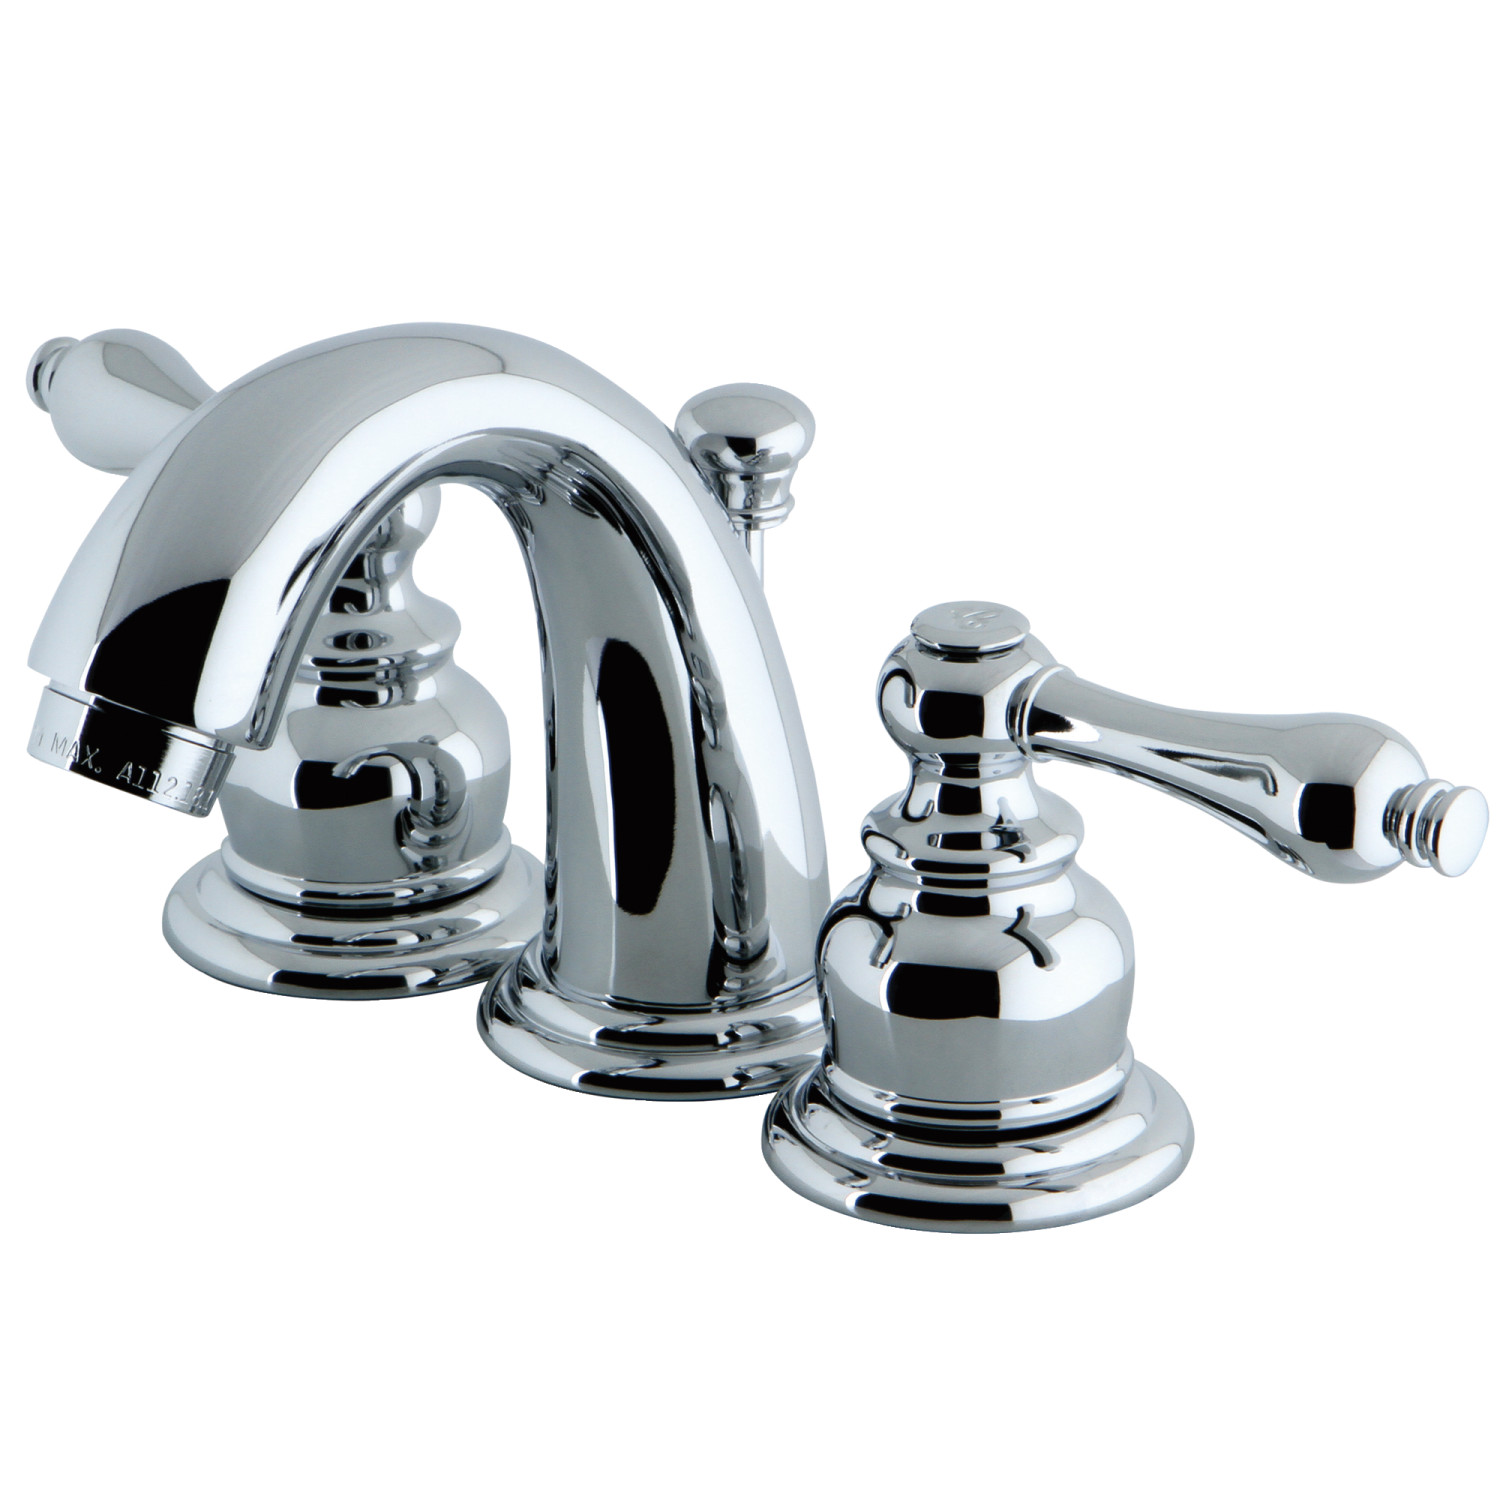 Two-Handle 3-Hole Deck Mounted Widespread Bathroom Faucet with Plastic Pop-Up